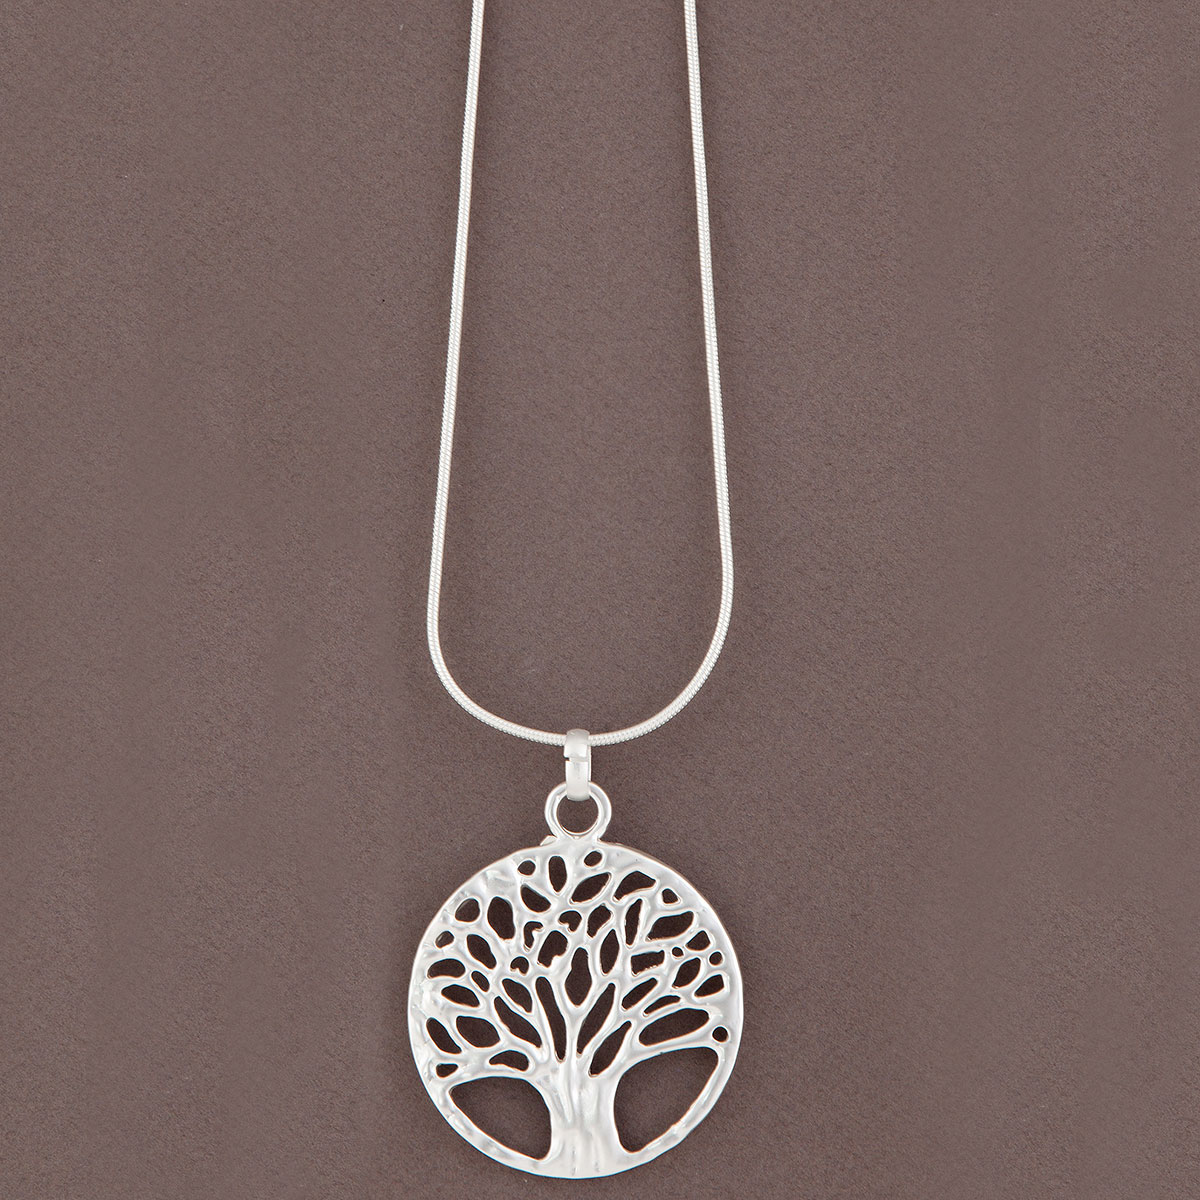 Matte Silver Tree of Life on Chain Necklace